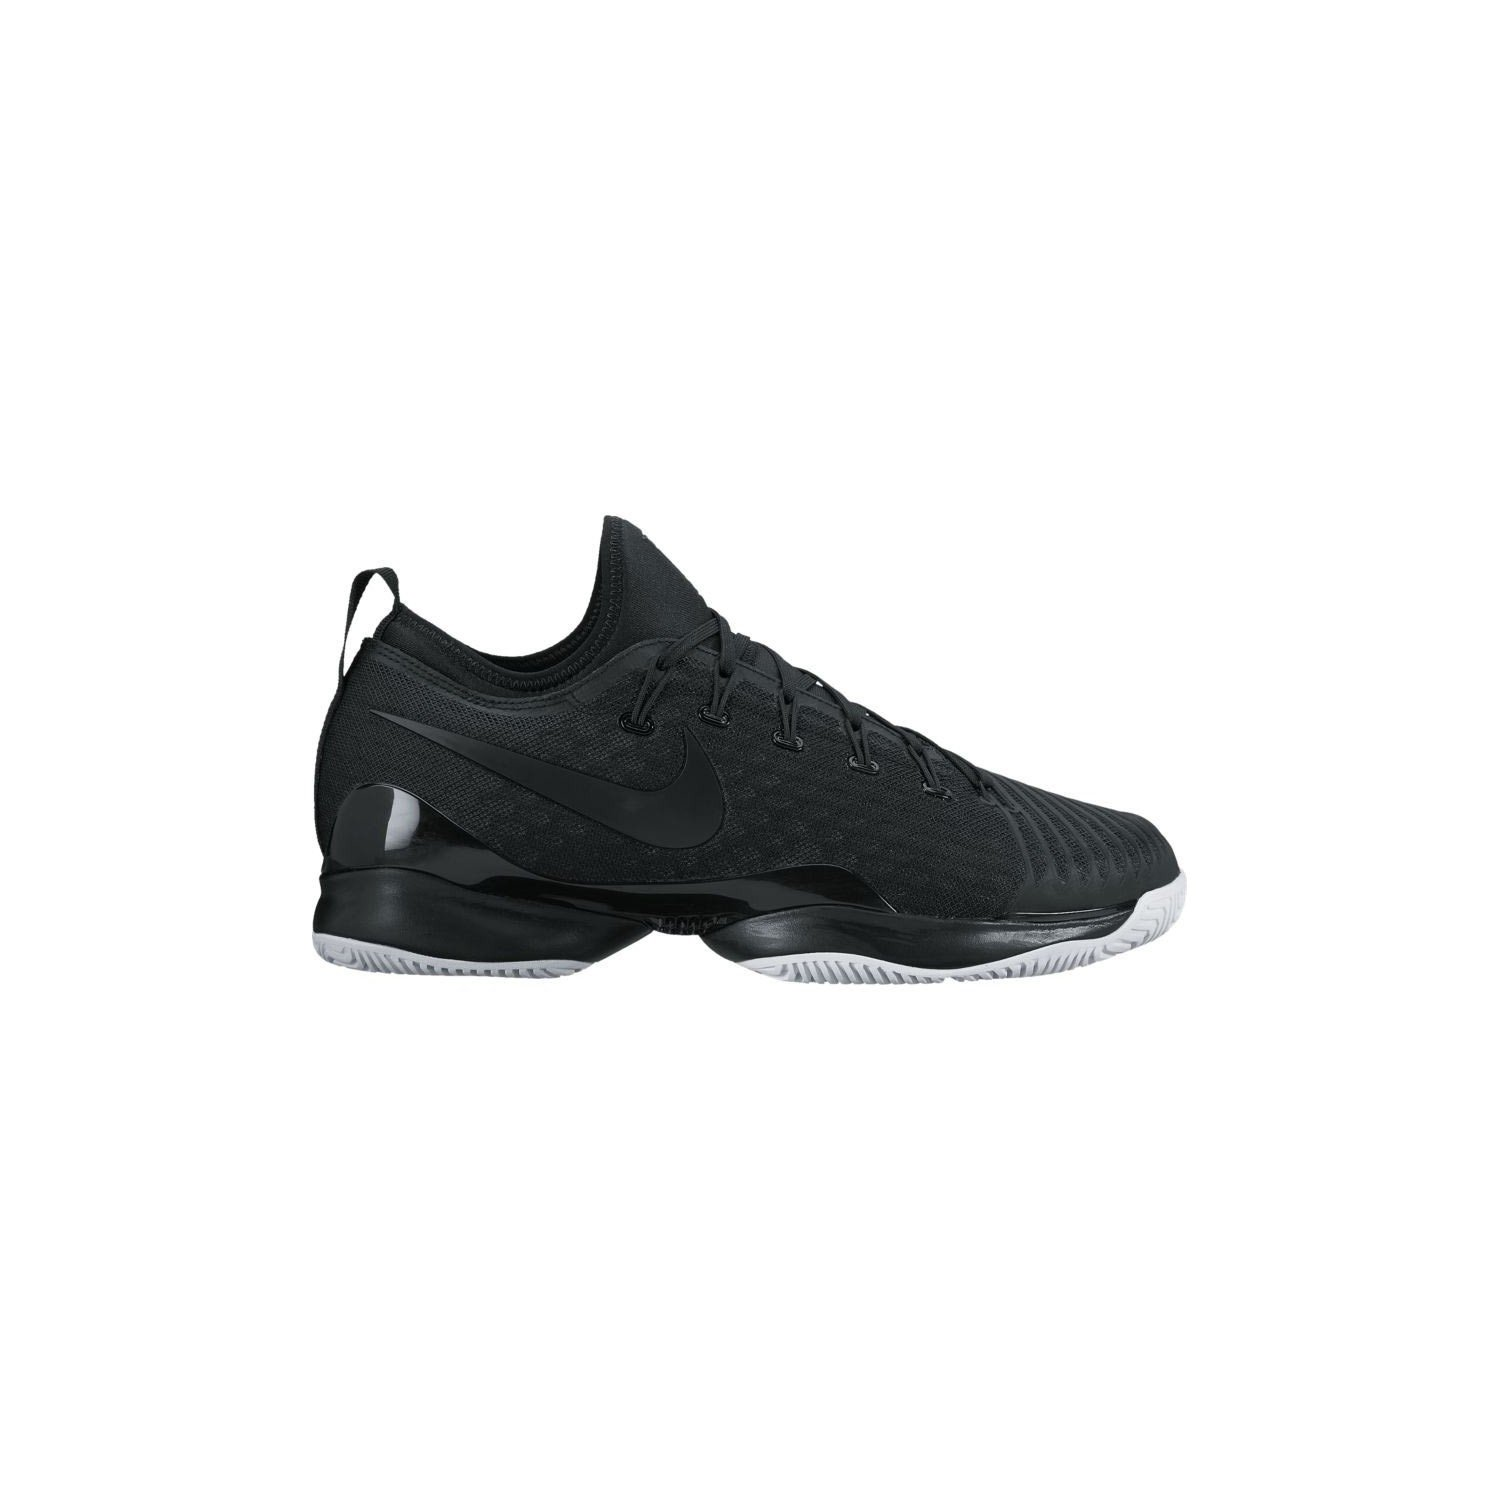 Chaussure Nike Air Zoom Ultra React schwarze Spring 2017 - 44